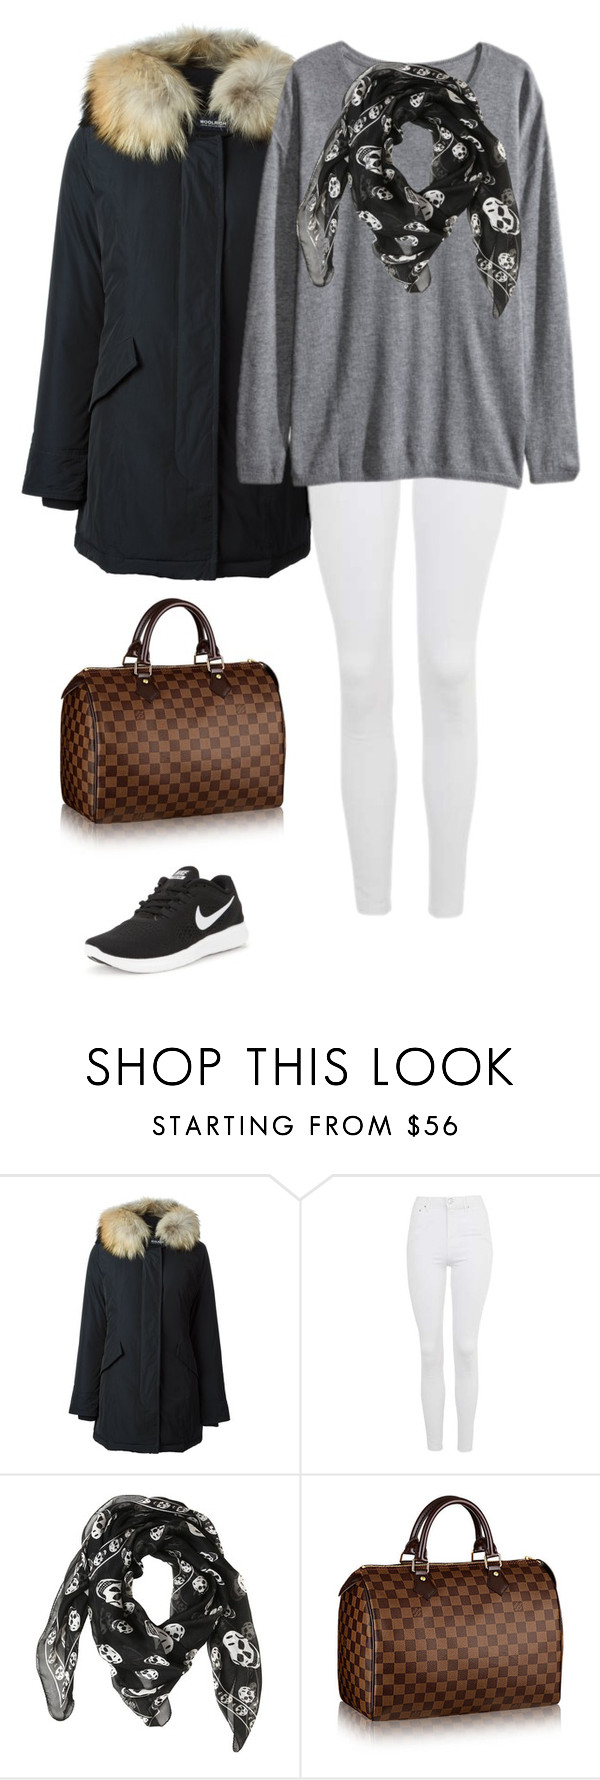 """""""autumn """" by juliachristinaxo ❤ liked on Polyvore featuring Woolrich, Topshop, H&M, Alexander McQueen and NIKE"""